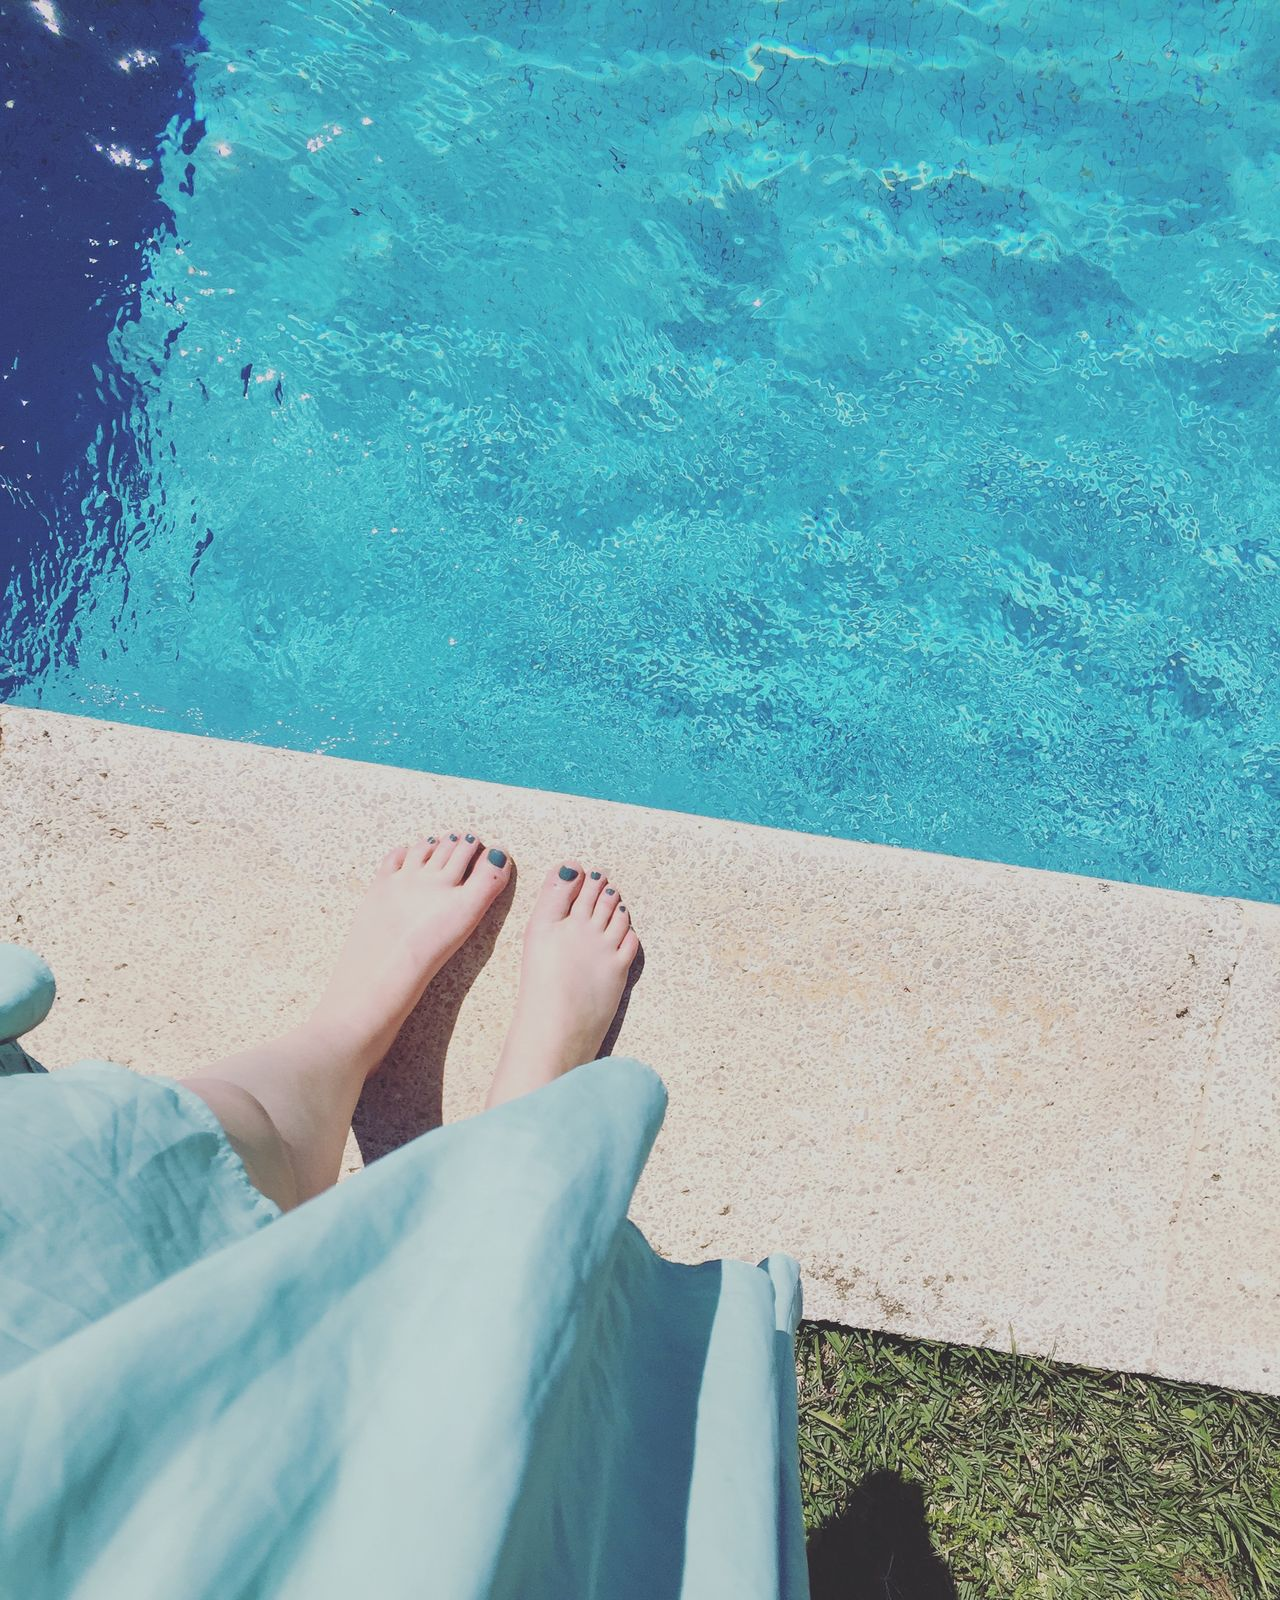 Barefoot Blue Day High Angle View Human Body Part Human Foot Human Leg Leisure Activity Lifestyles Low Section One Person One Woman Only Outdoors Personal Perspective Poolside Real People Relaxation Sea Shadow Summer Sunlight Swimming Pool Vacations Water Women